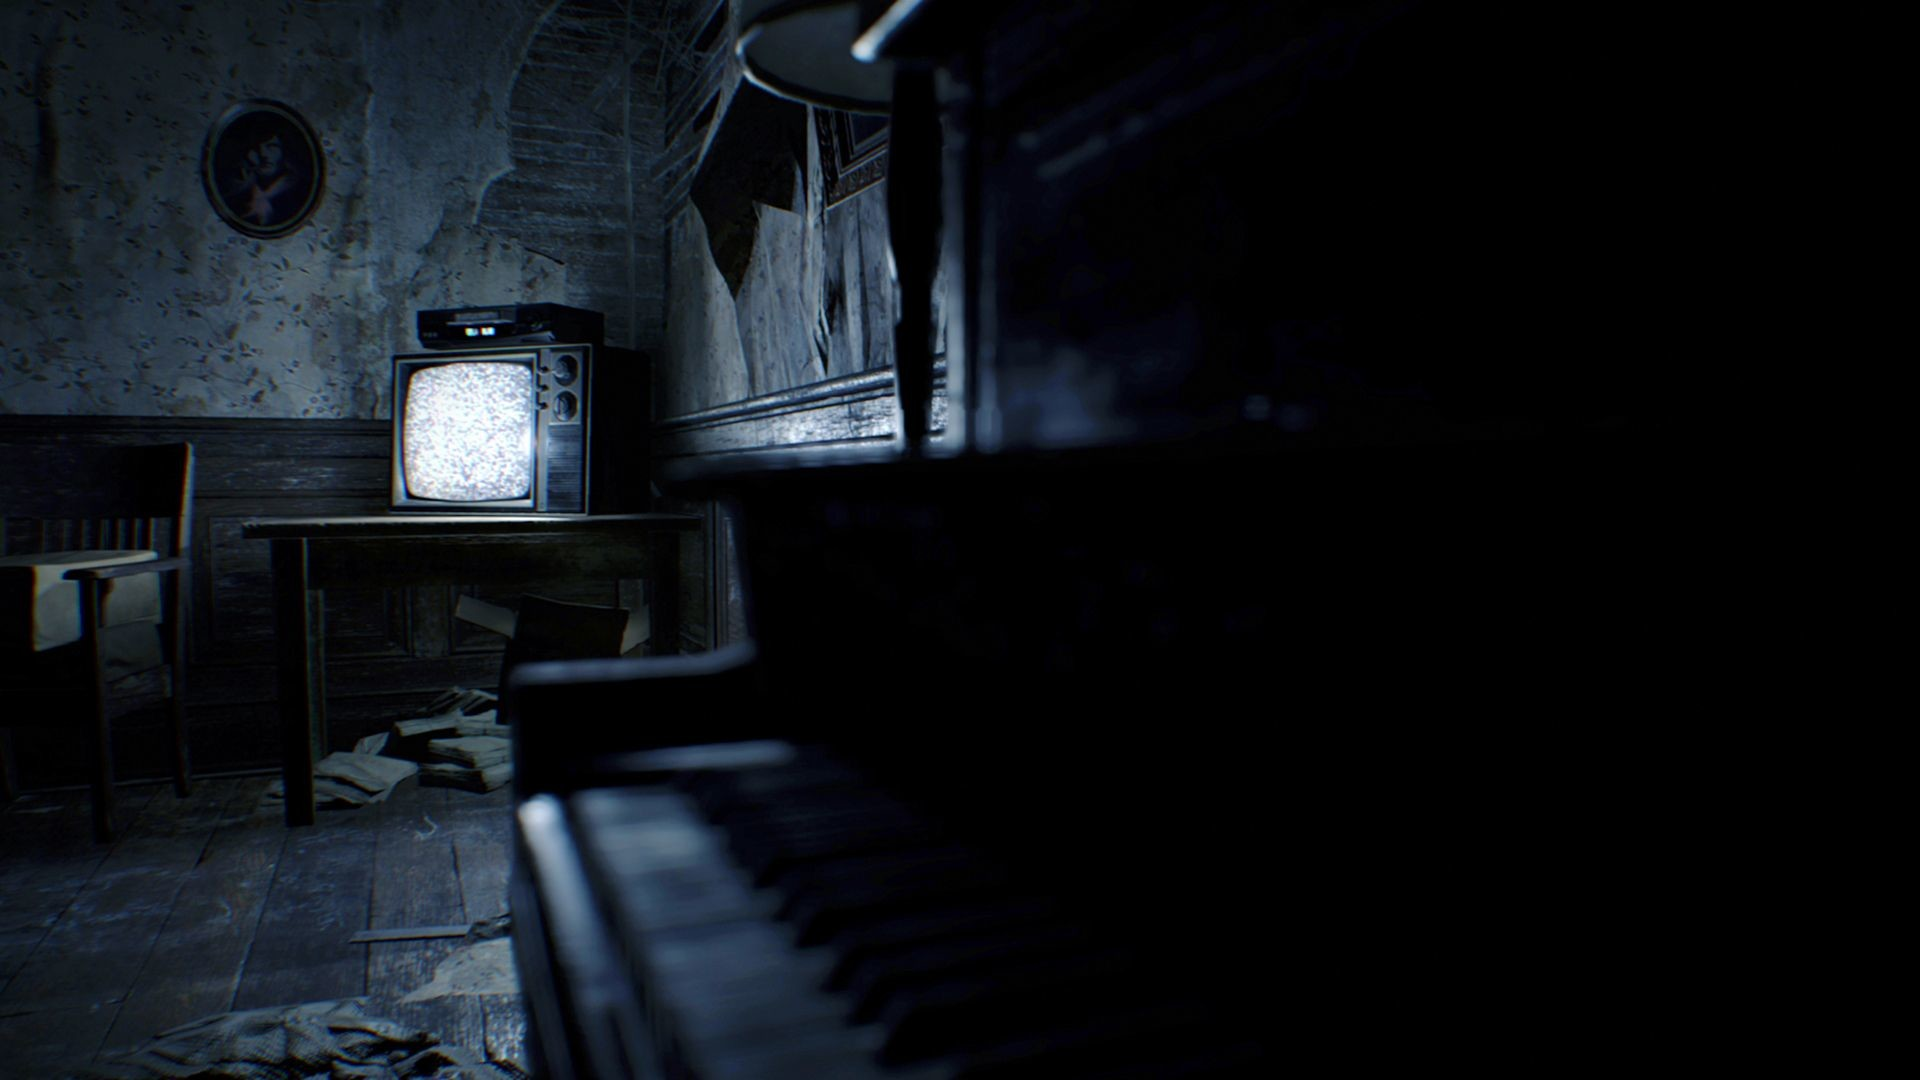 Does Resident Evil 7 change too much? – Reader's Feature